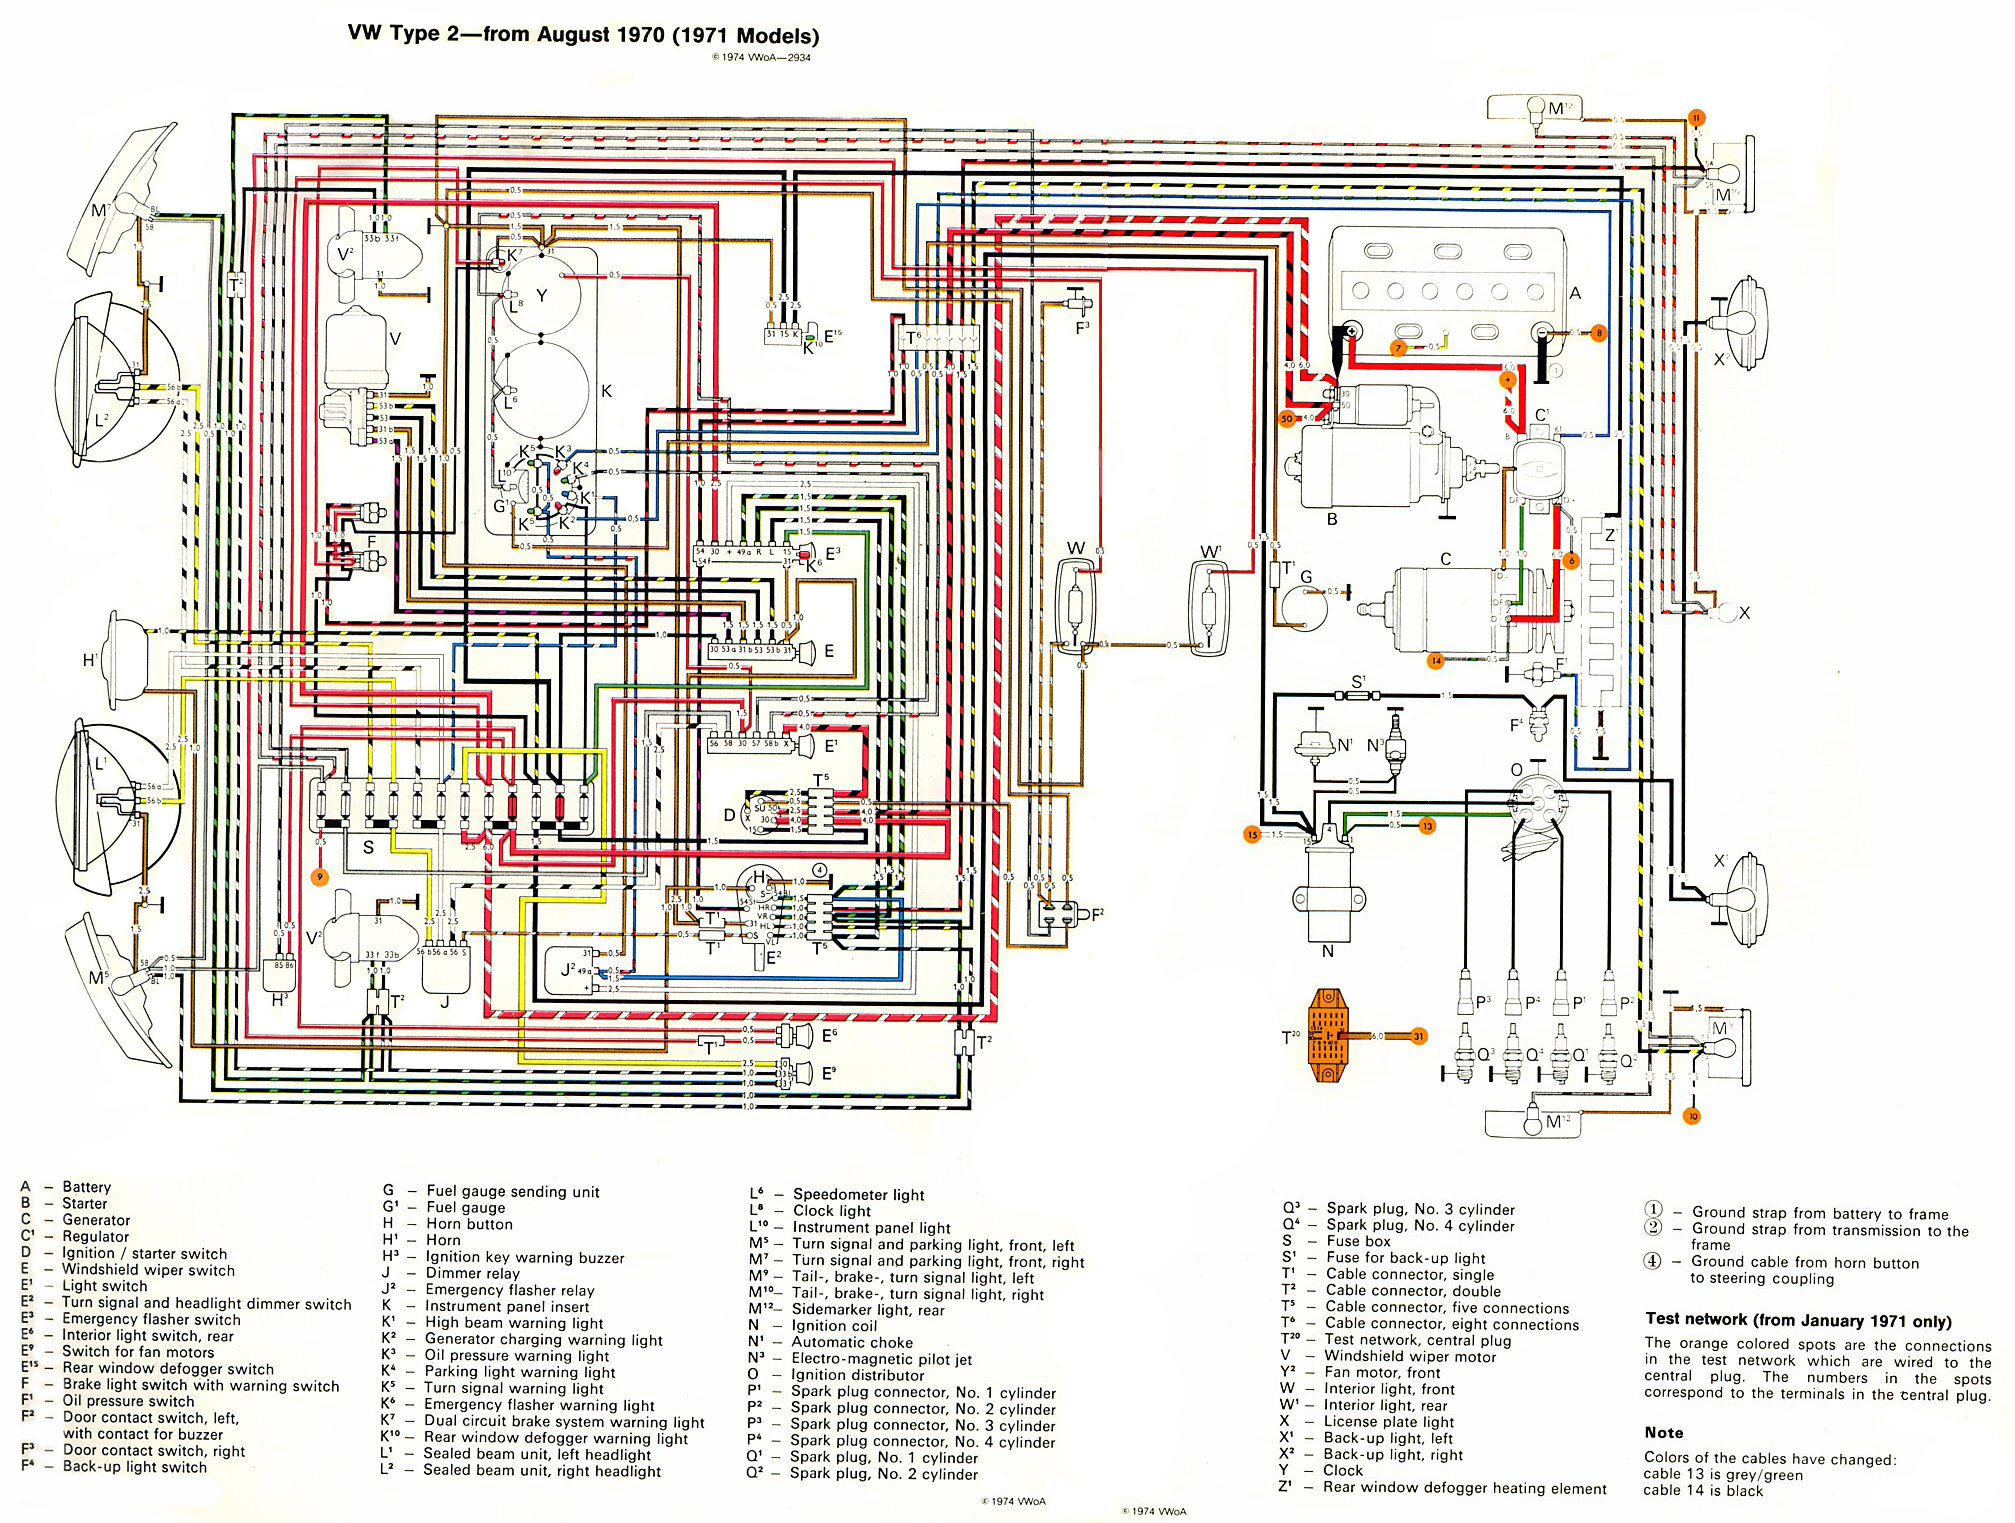 baybus_71_fixed wiring schematic diagram carrier package unit wiring diagram vw wiring diagram symbols at gsmx.co